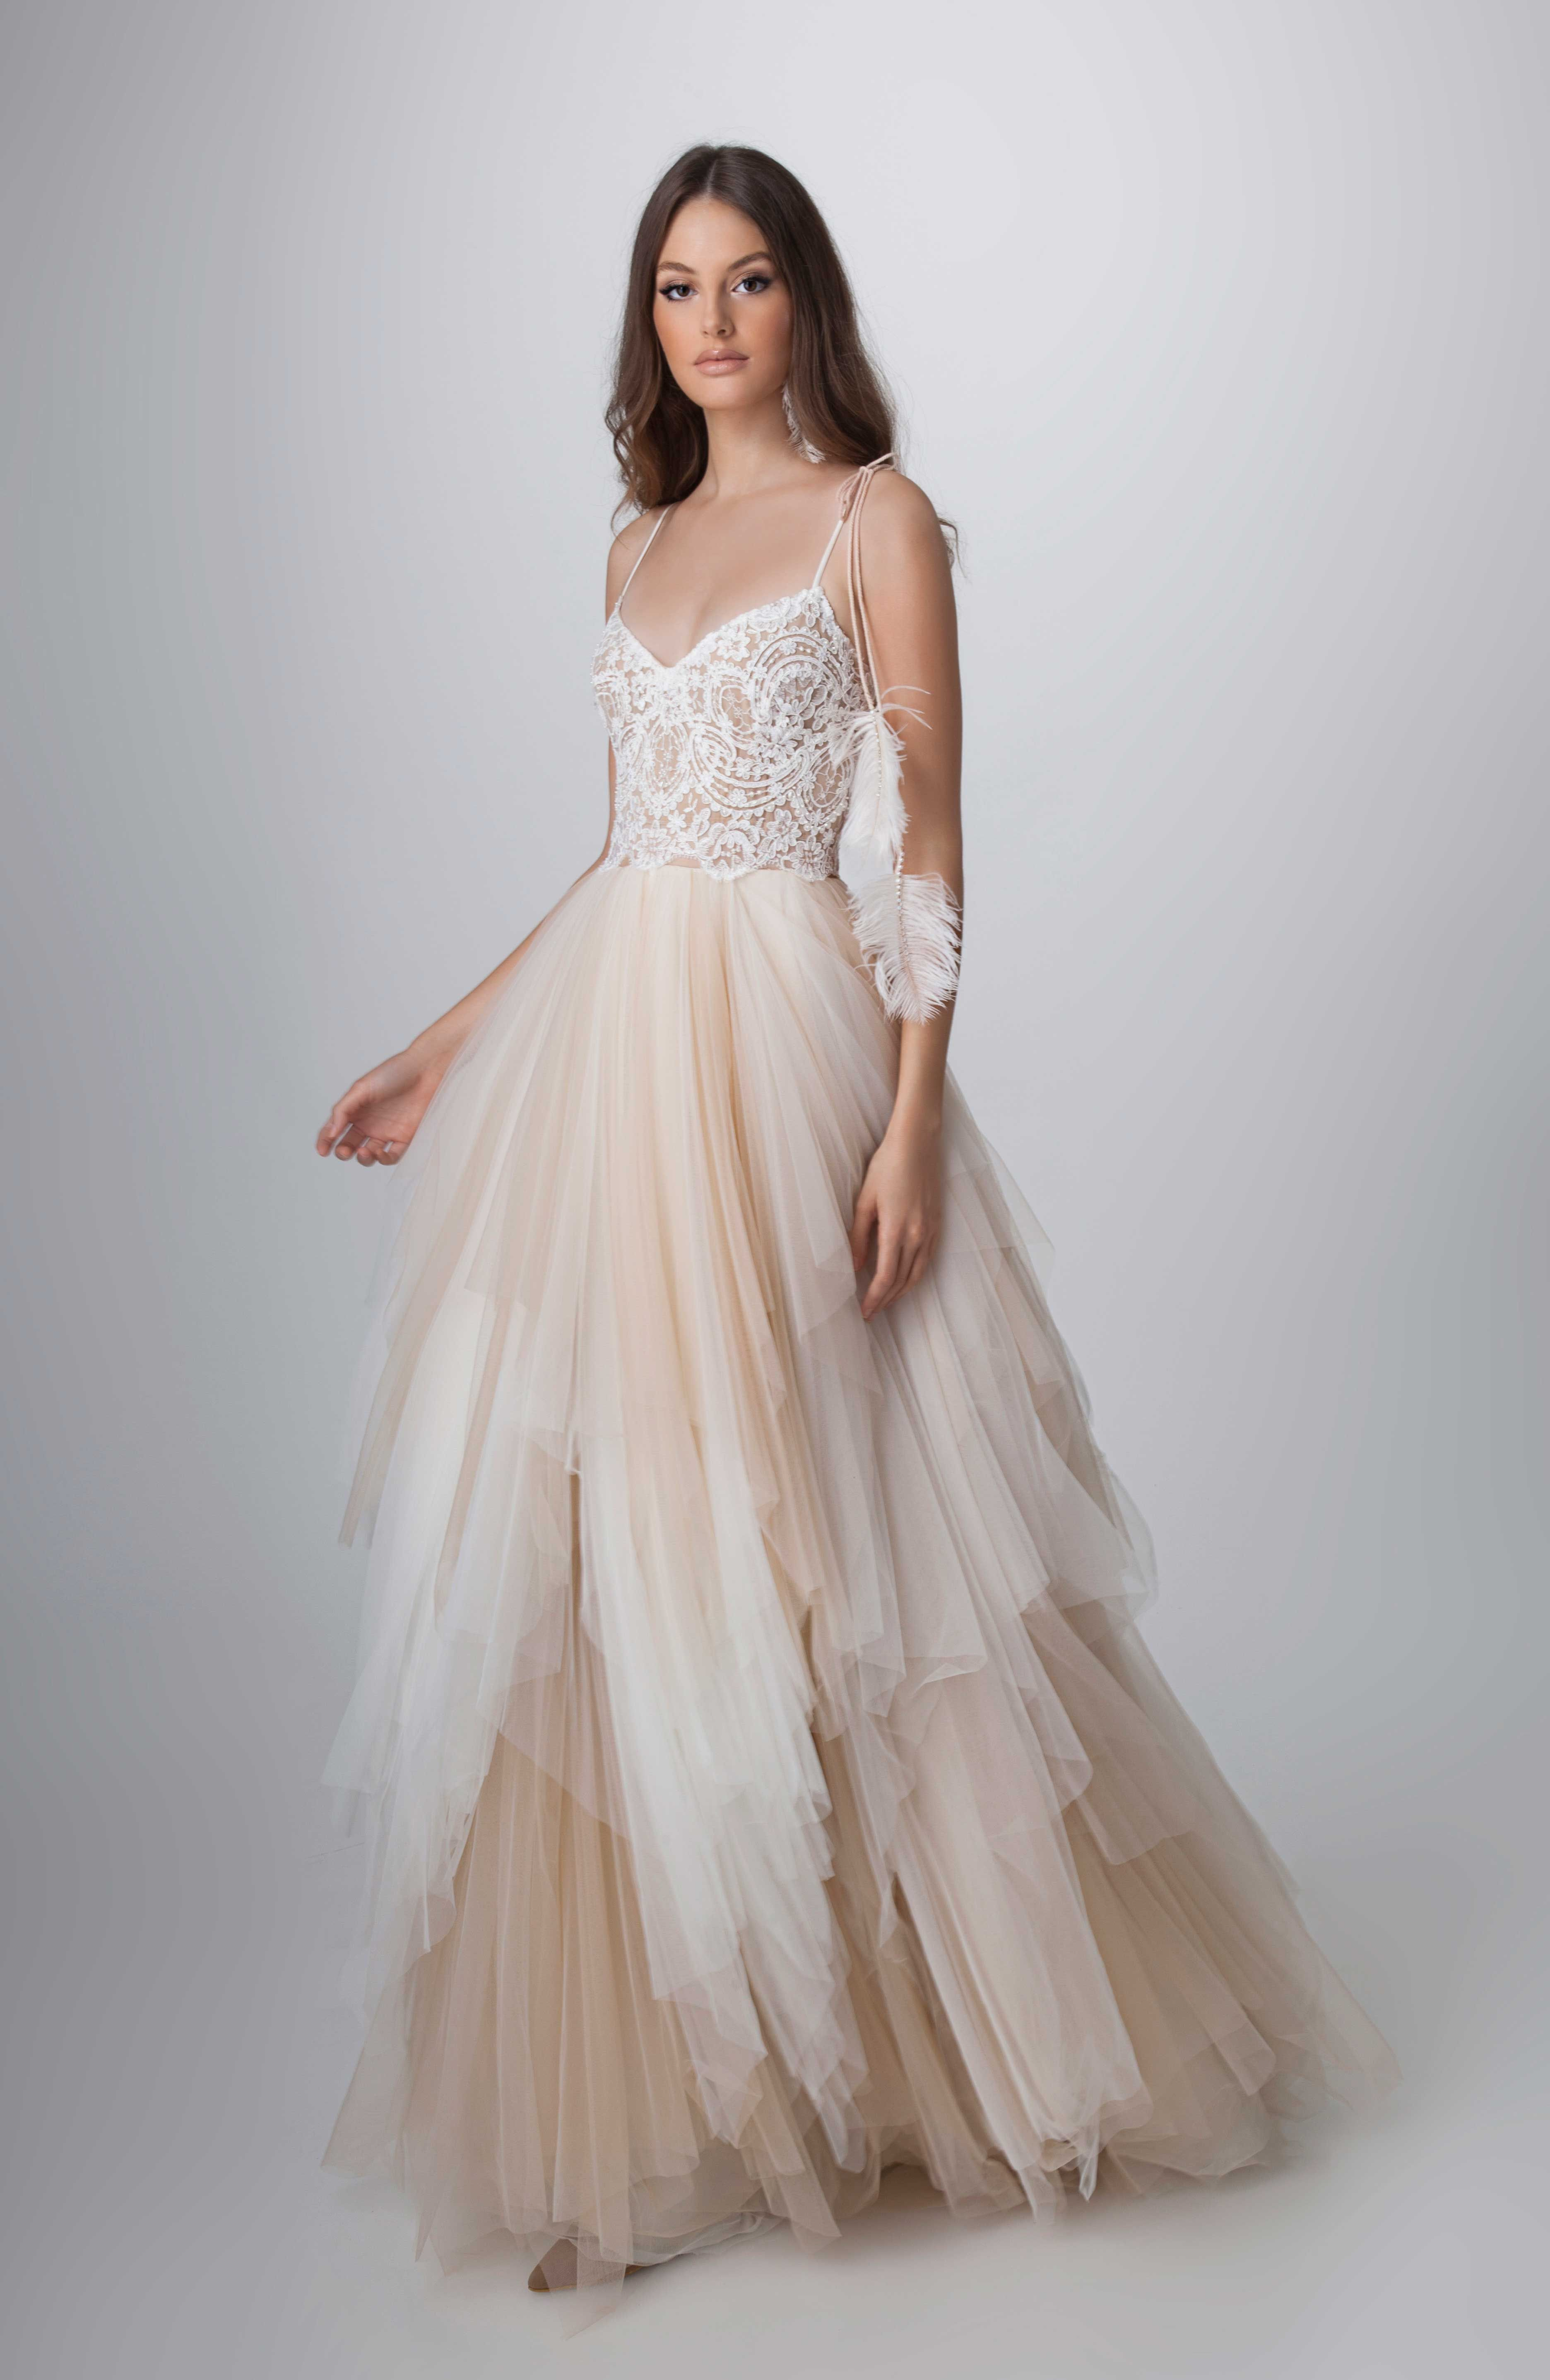 Scarlette gown gypsy glam pinterest bridal wedding and gowns